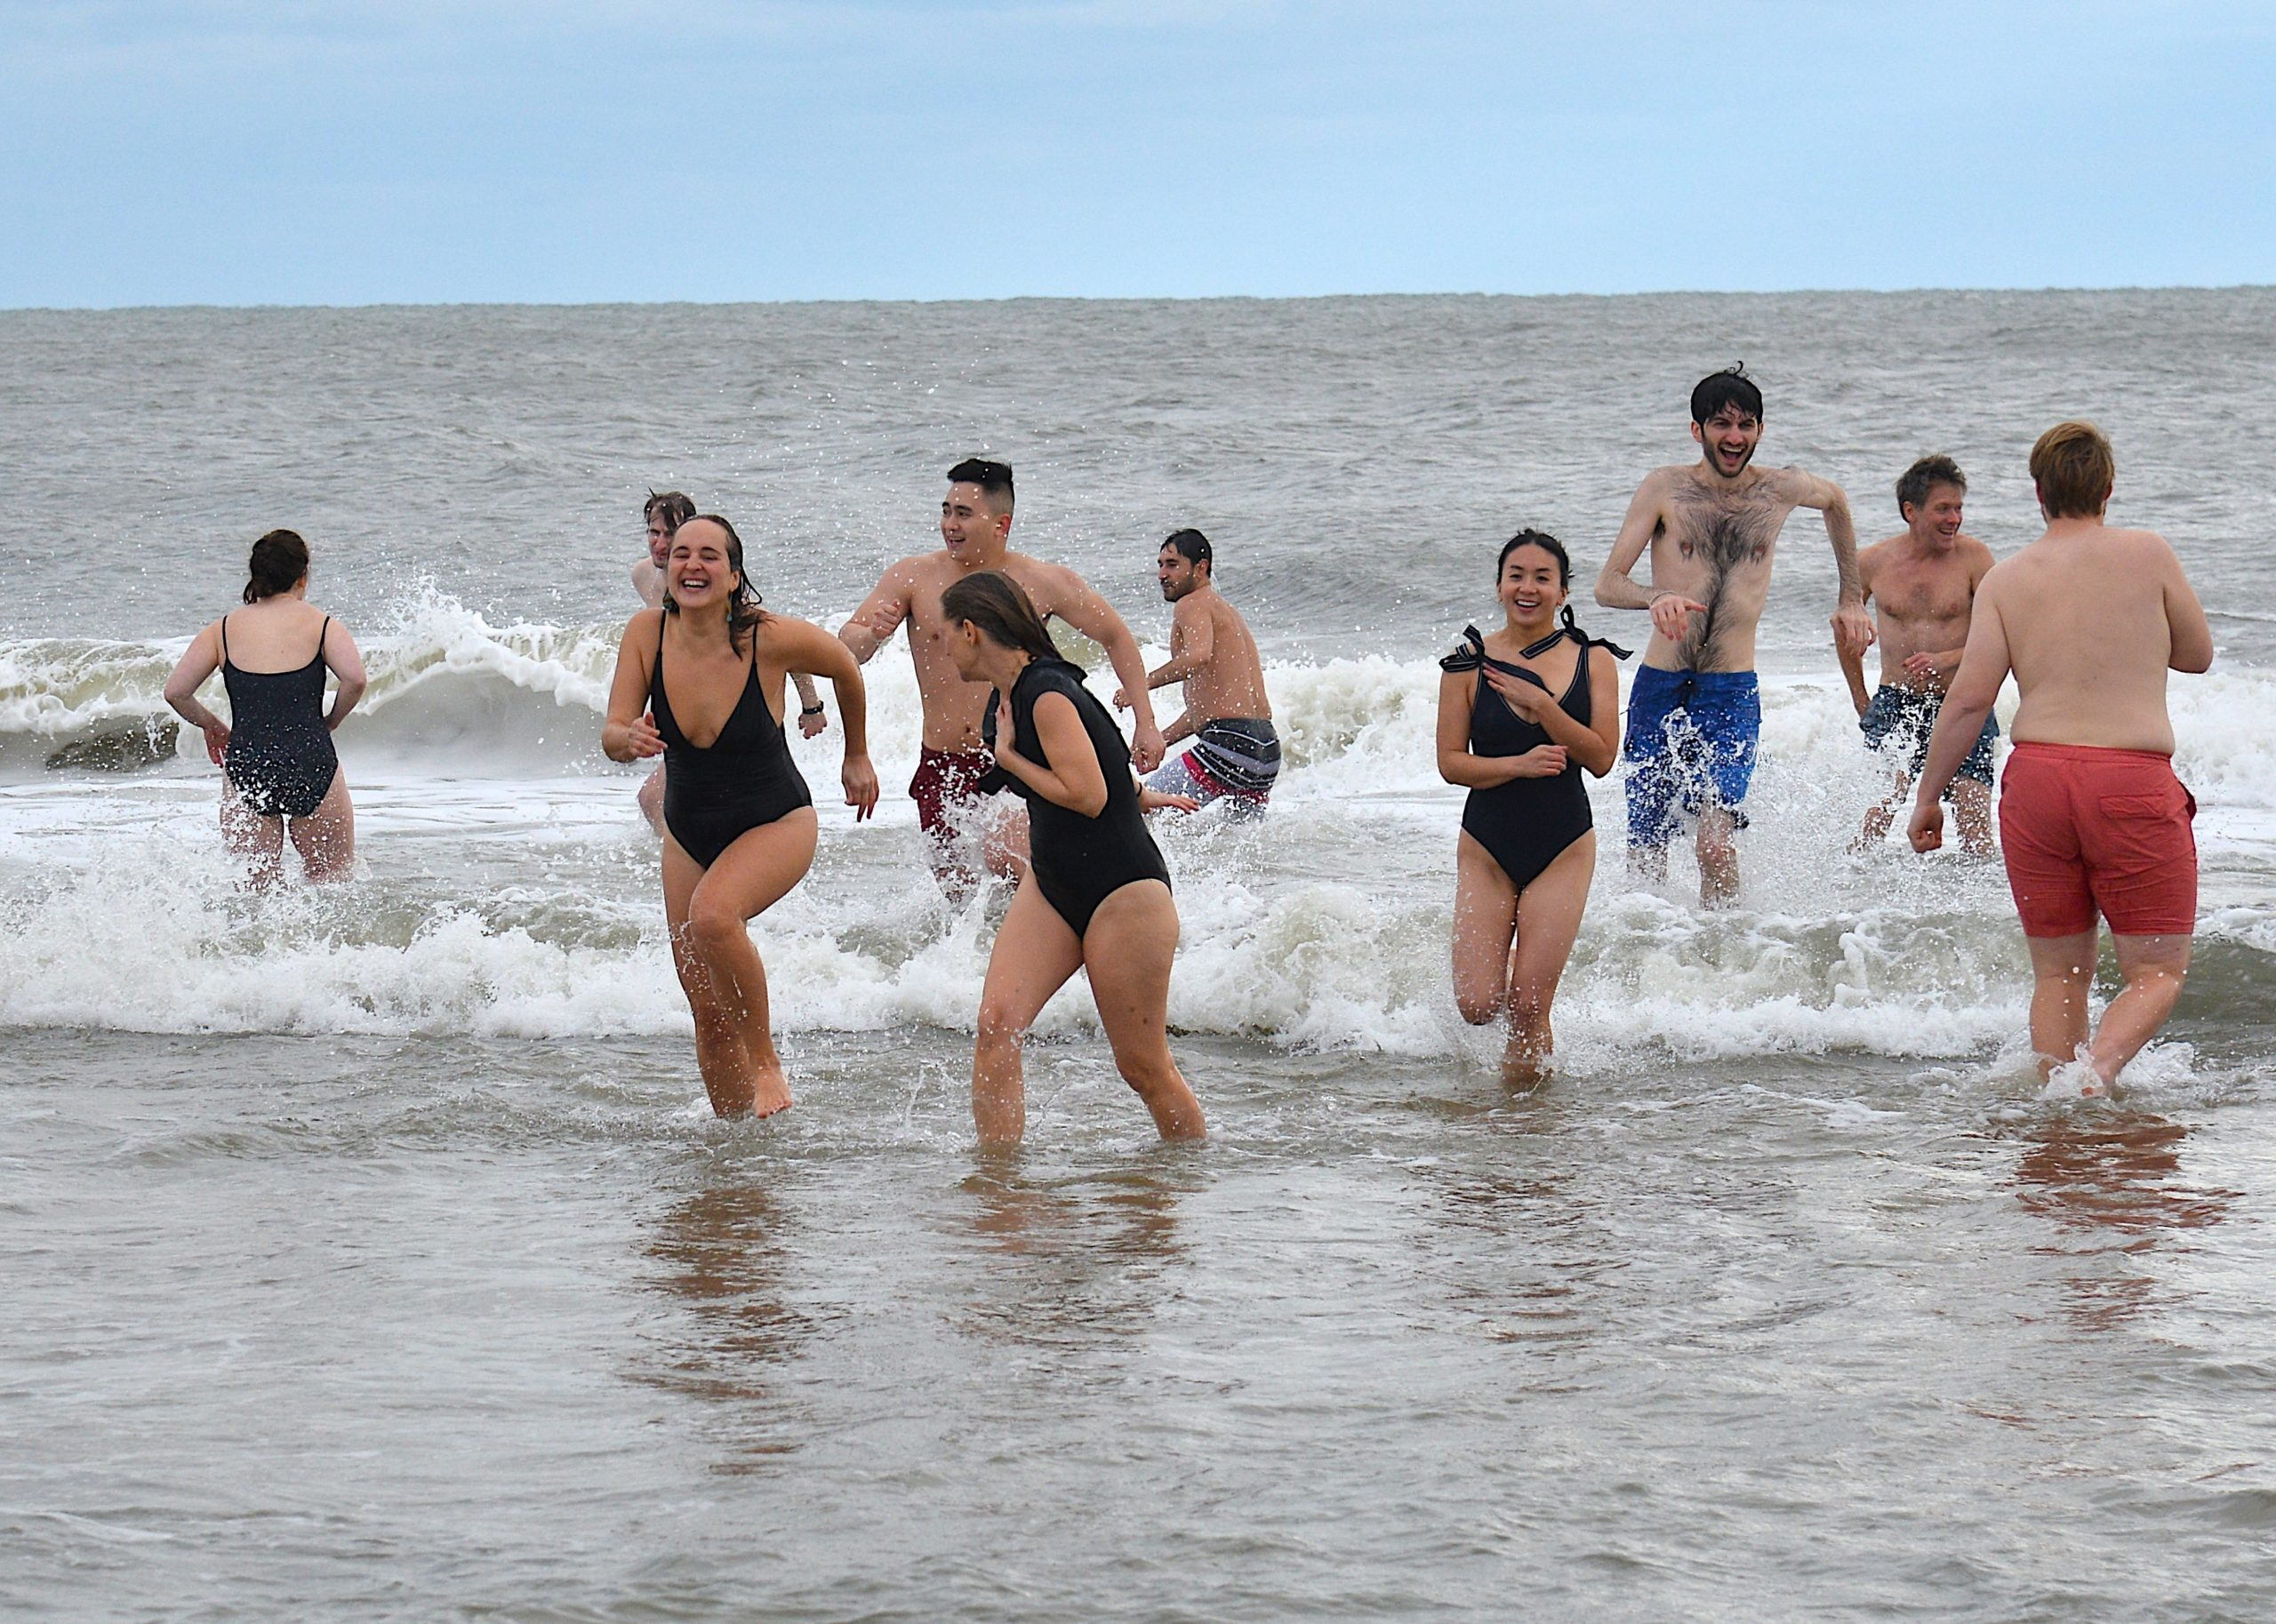 Dozens of brave souls gathered on New Year's Day for the annual polar plunge at a Wainscott beach, organized by the Seafood Shop. This year's event raised money for the Sag Harbor food pantry. KYRIL BROMLEY